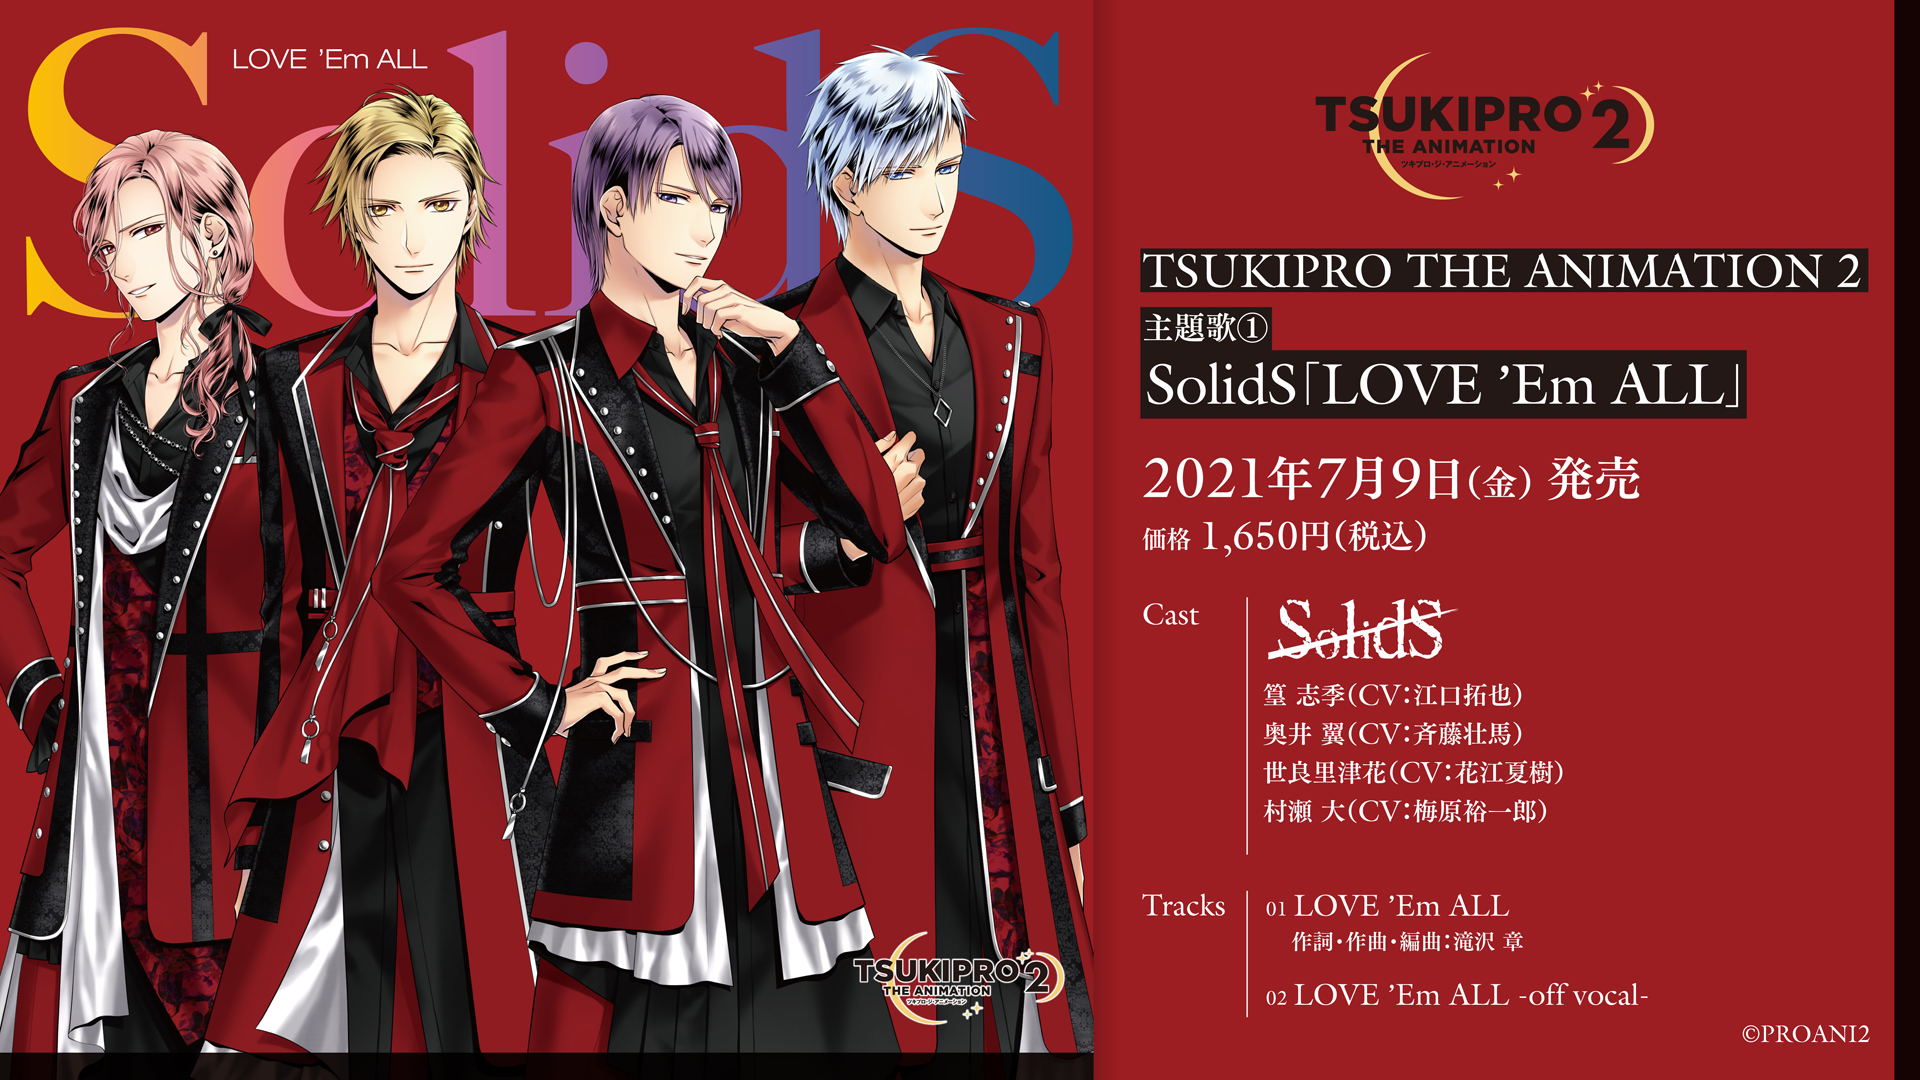 TVアニメ「TSUKIPRO THE ANIMATION 2」主題歌① SolidS「LOVE 'Em ALL」